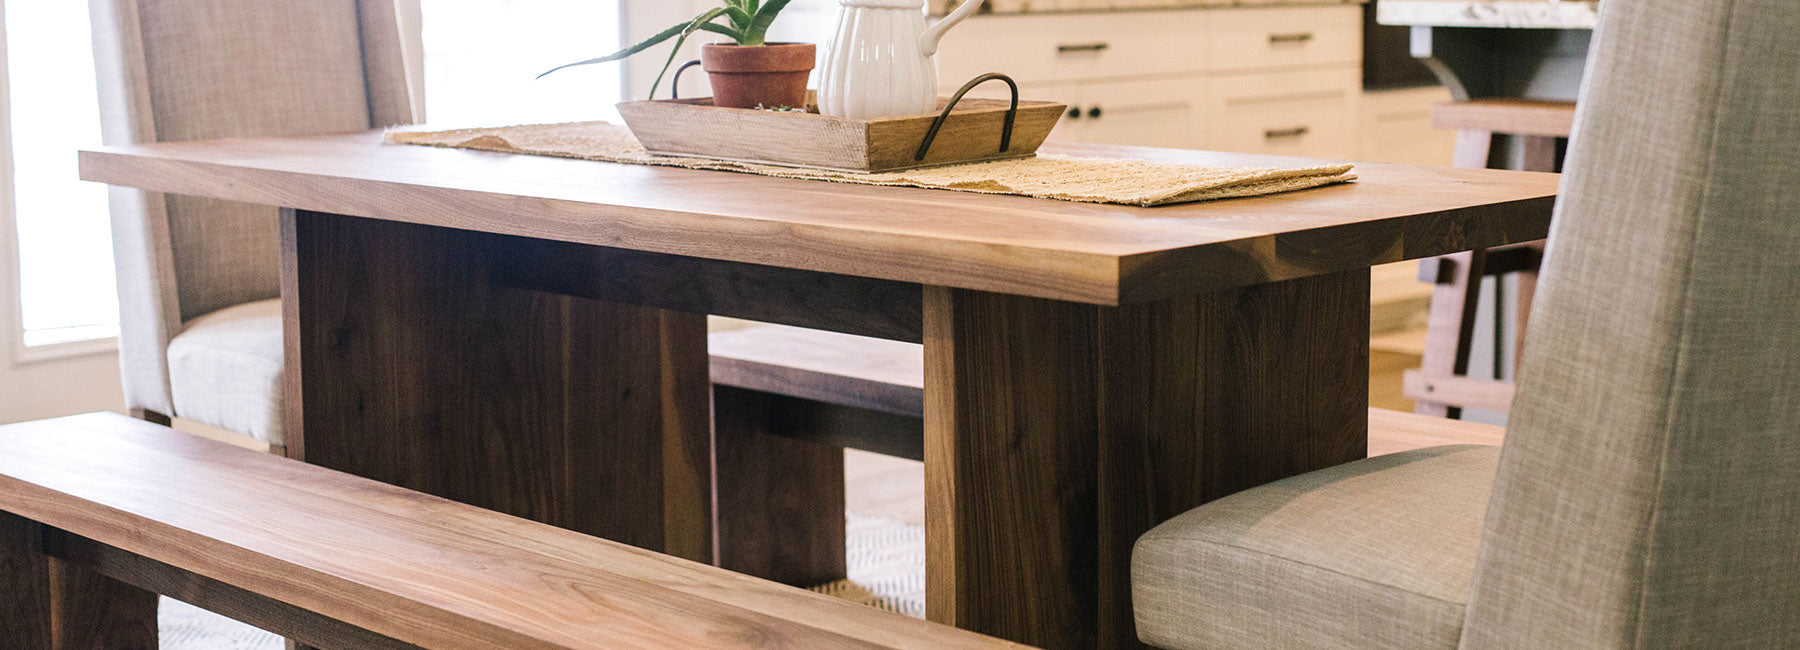 Step-by-Step Guide to Cleaning Wood Furniture